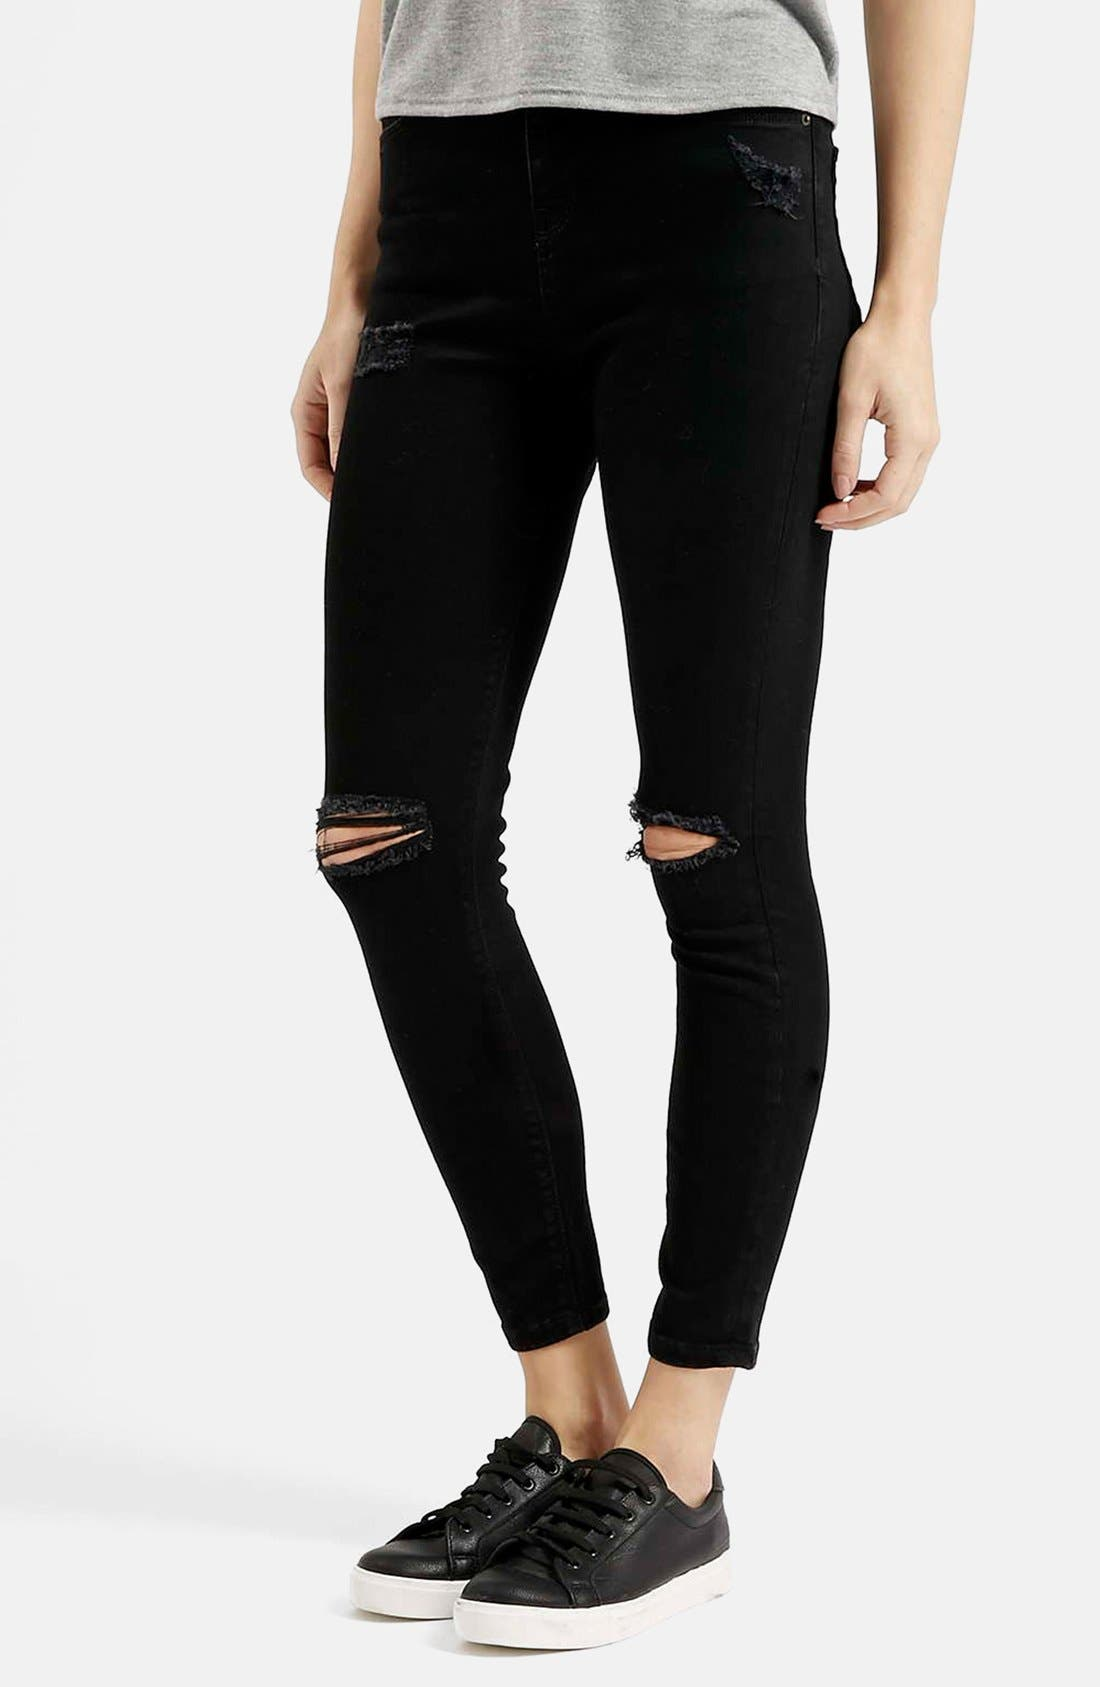 Alternate Image 1 Selected - Topshop Moto 'Jamie' Ripped Skinny Jeans (Black)